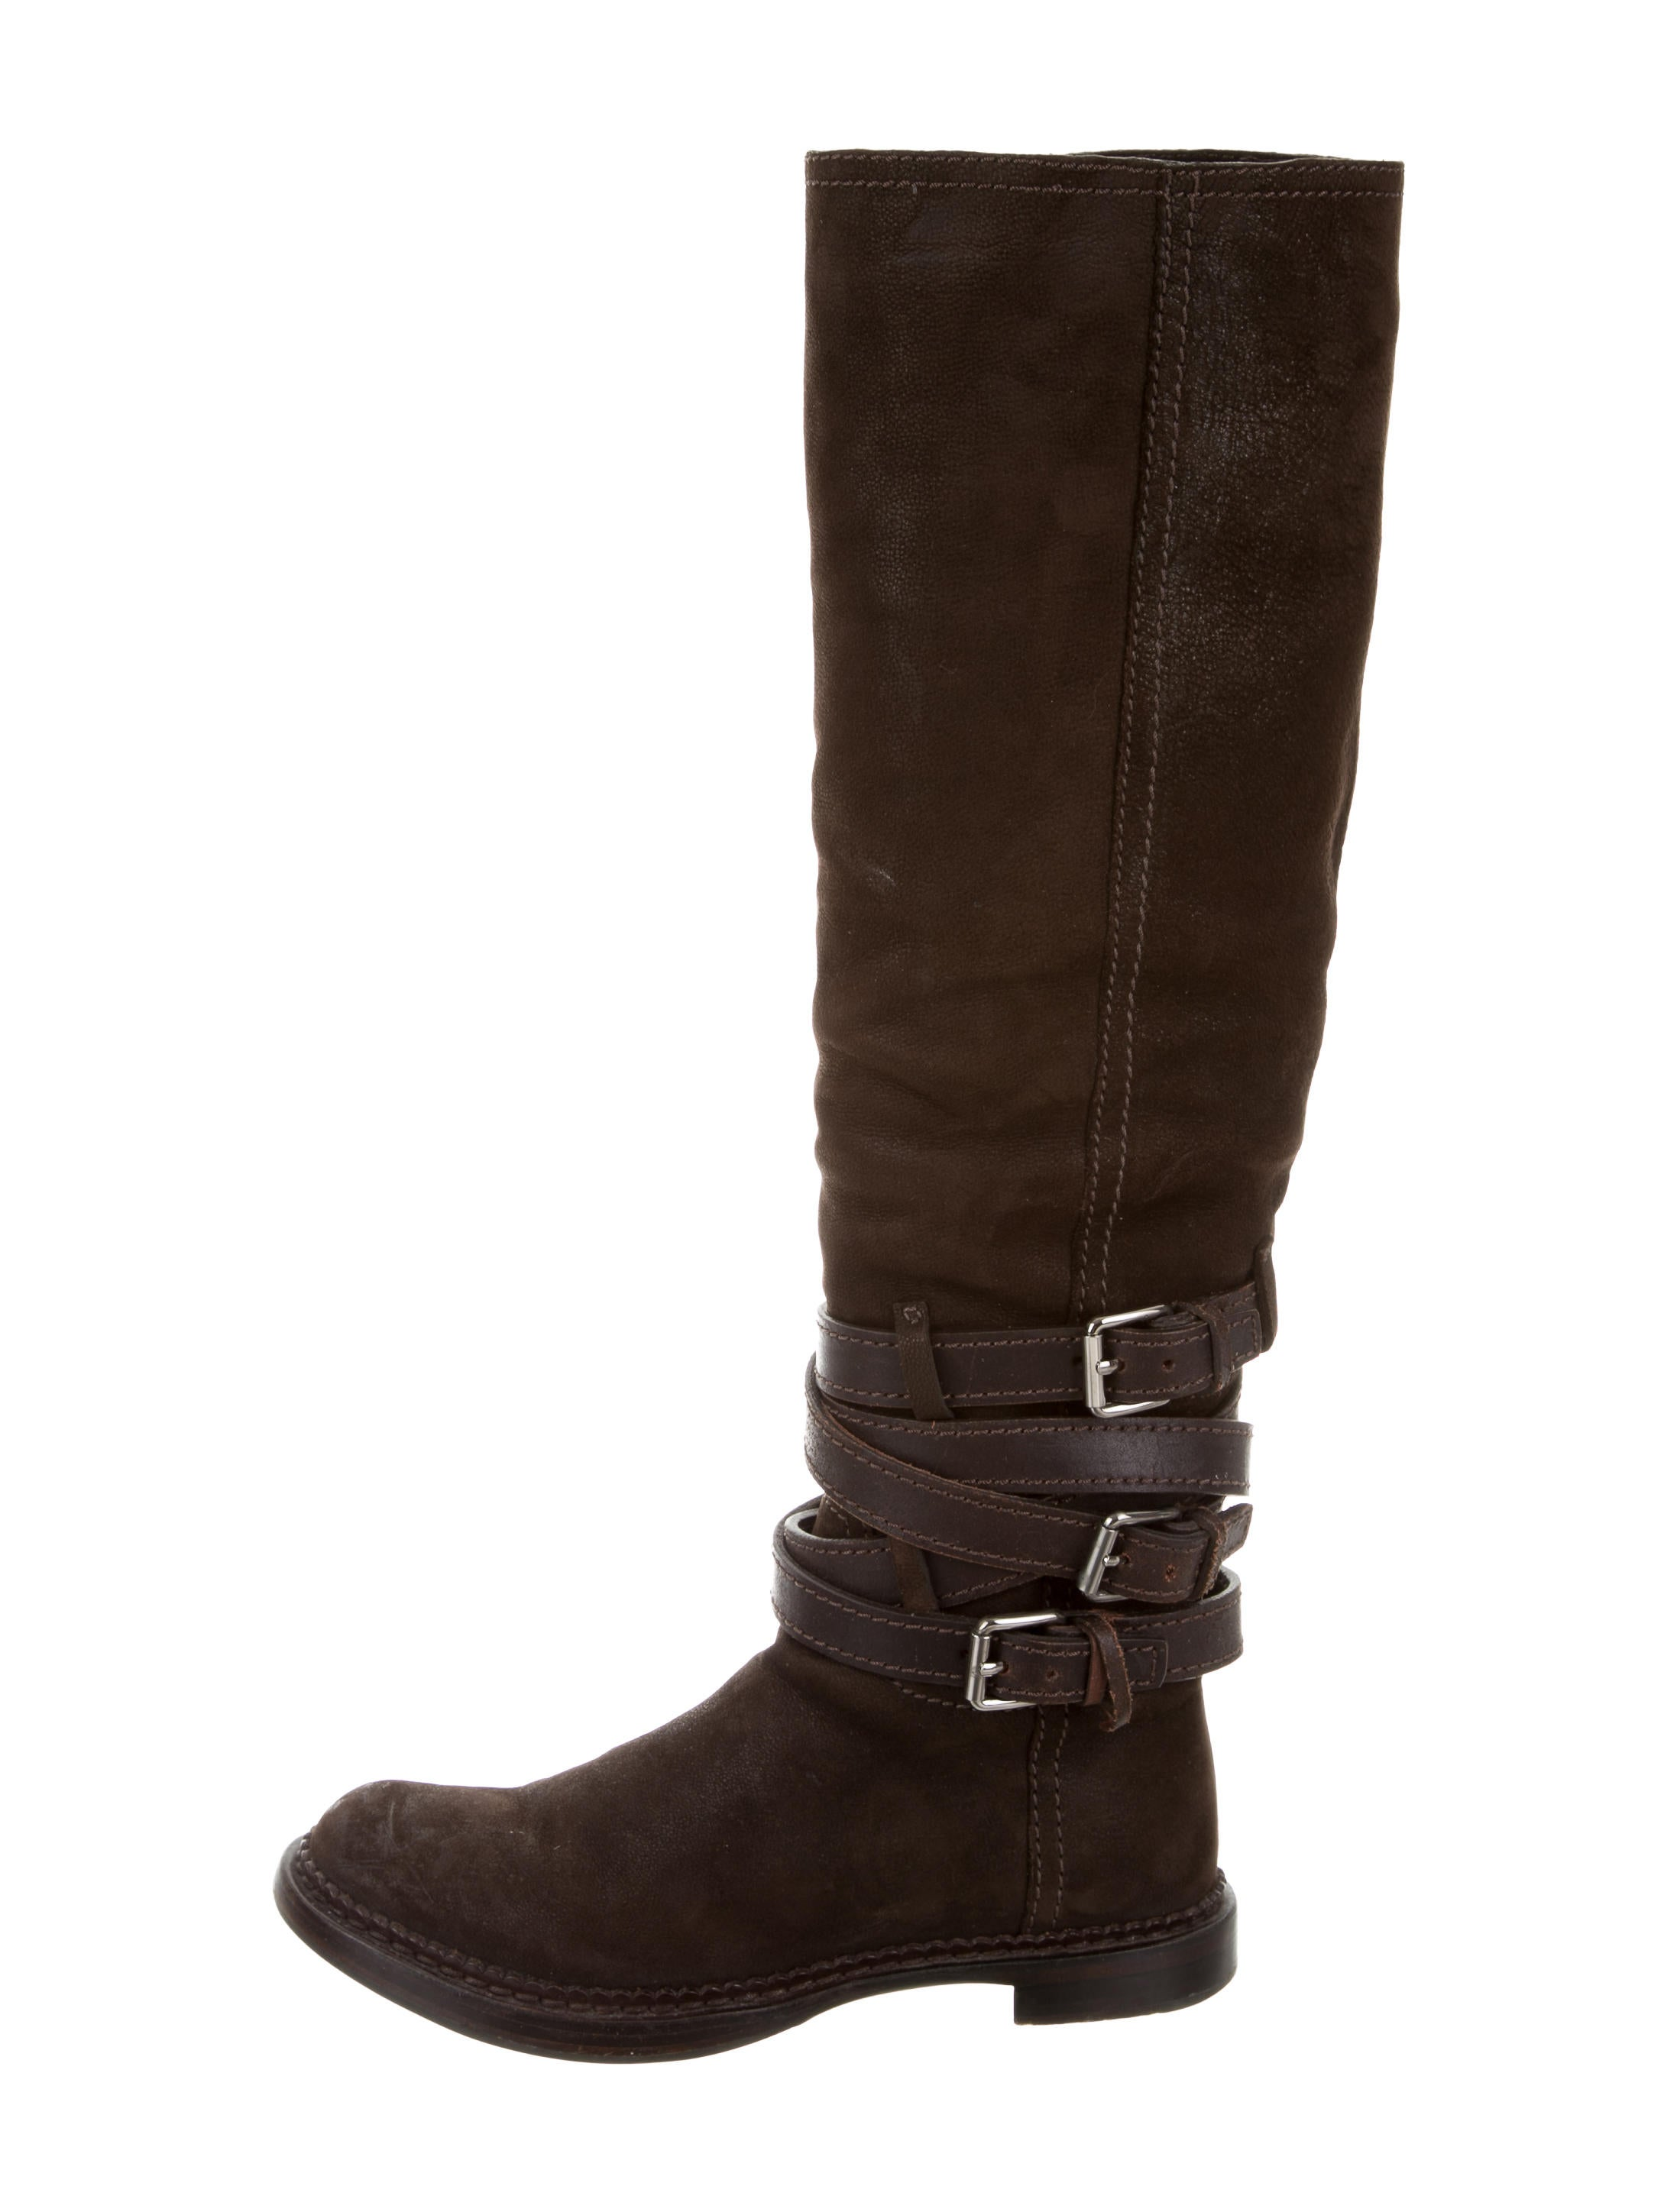 miu miu suede the knee boots shoes miu48338 the